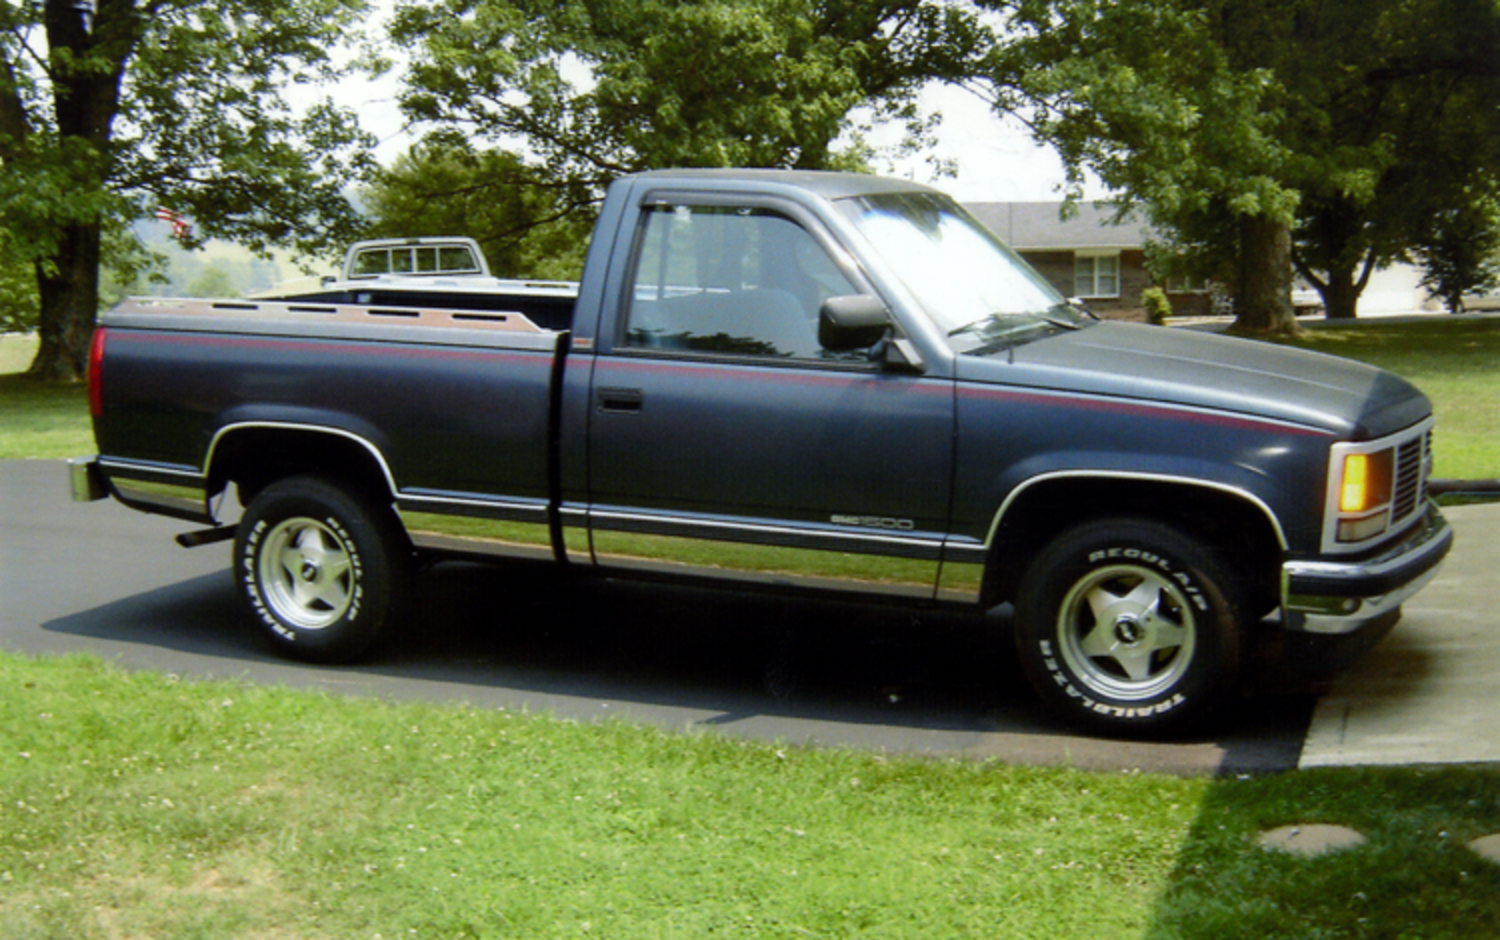 1988 GMC 1500 Charles S. Tennessee View Photo